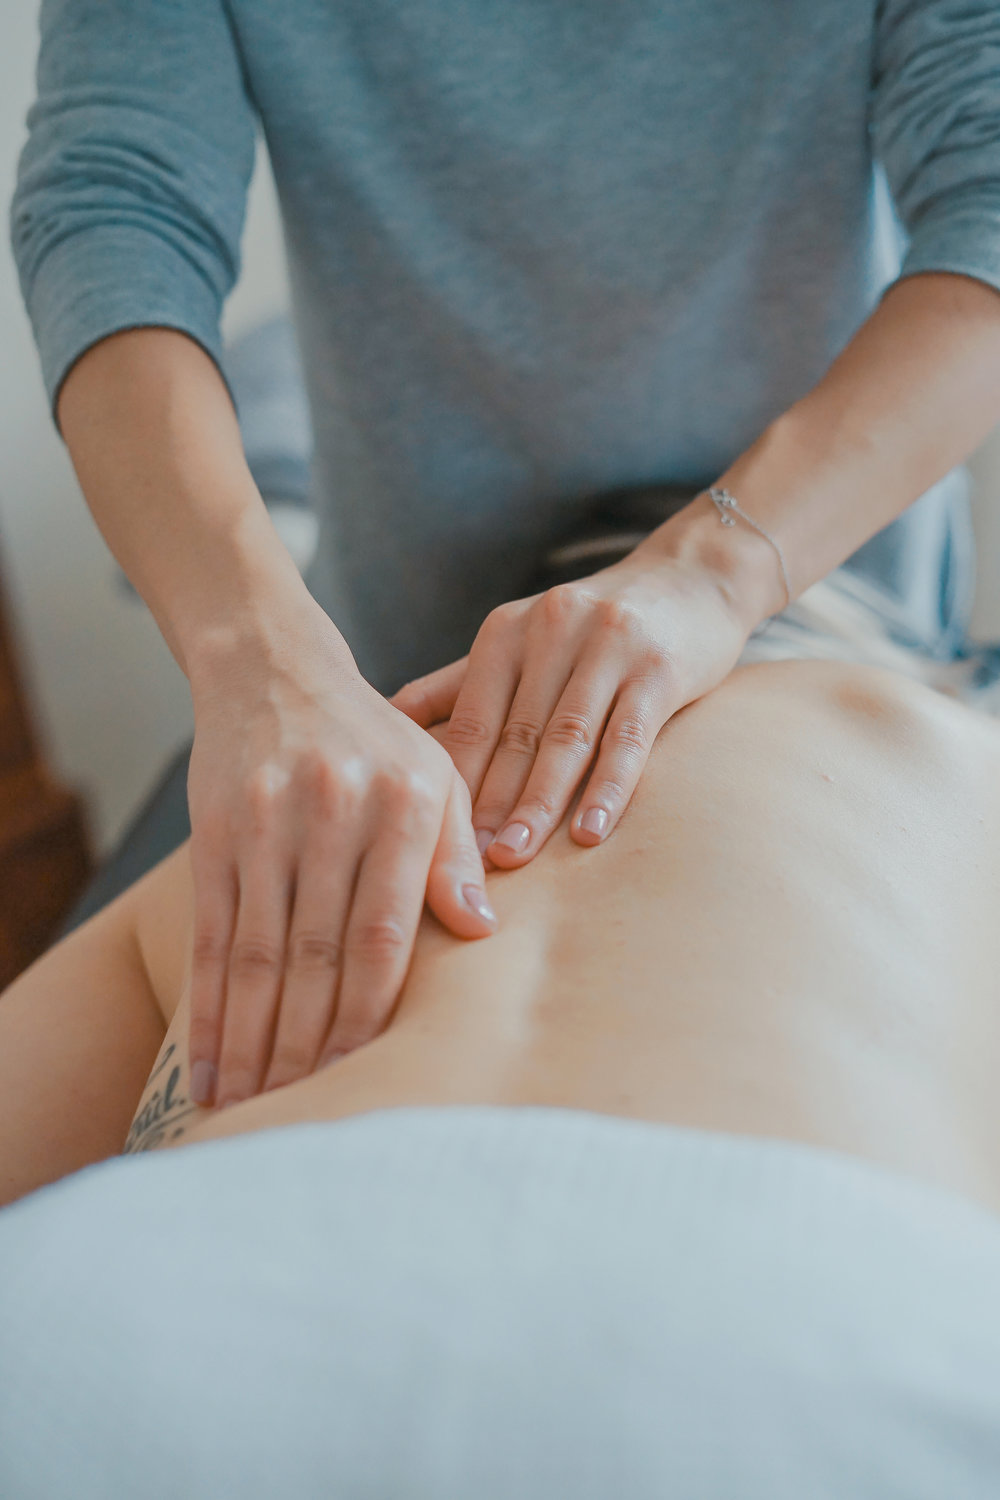 How else can massage improve my life? - Massage has many other benefits including;· improved mental health (anxiety and depression),· muscular benefits (back, neck and joint pain)· improved immune system activity· increased circulation· normal digestive system function· improved mood and sleep quality